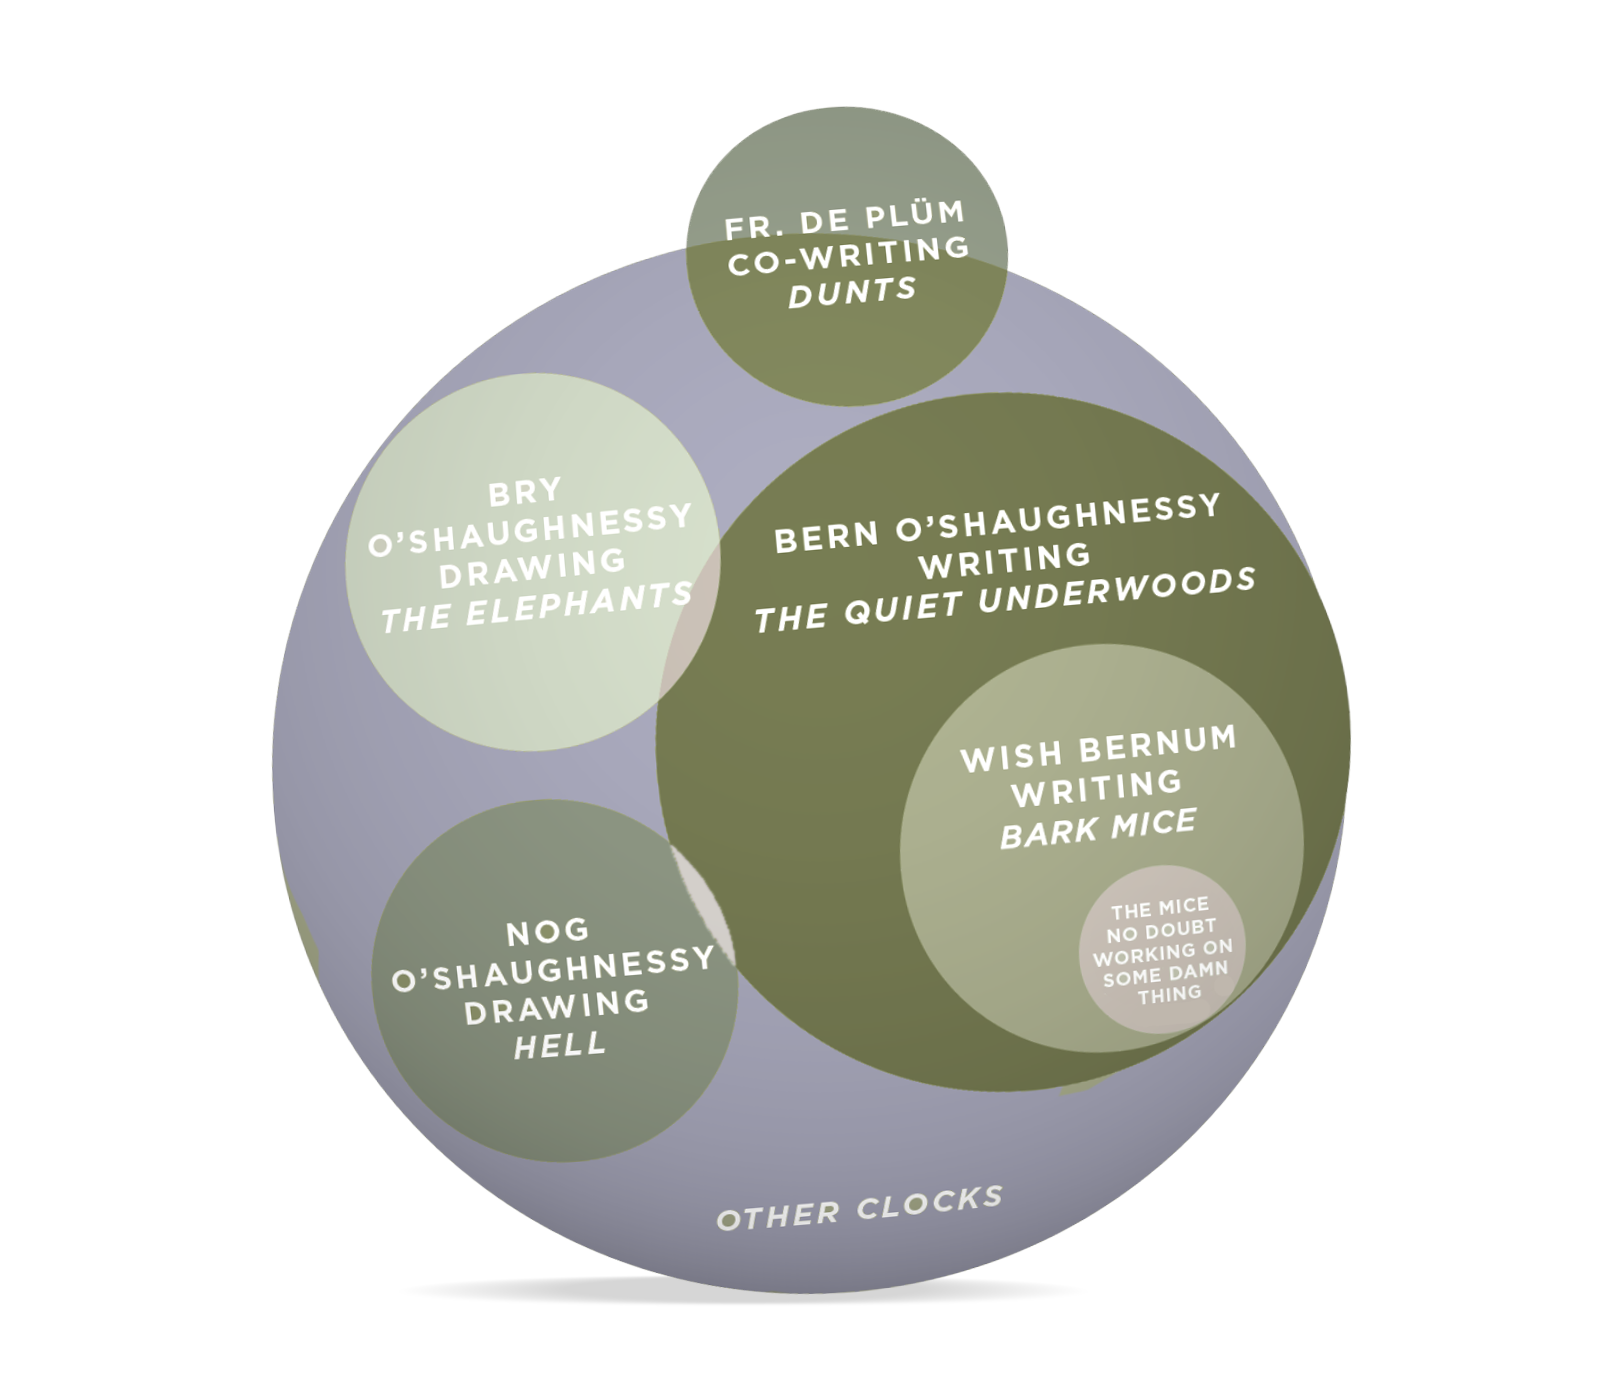 Venn diagram showing how the various art pieces and novels intersect and relate.